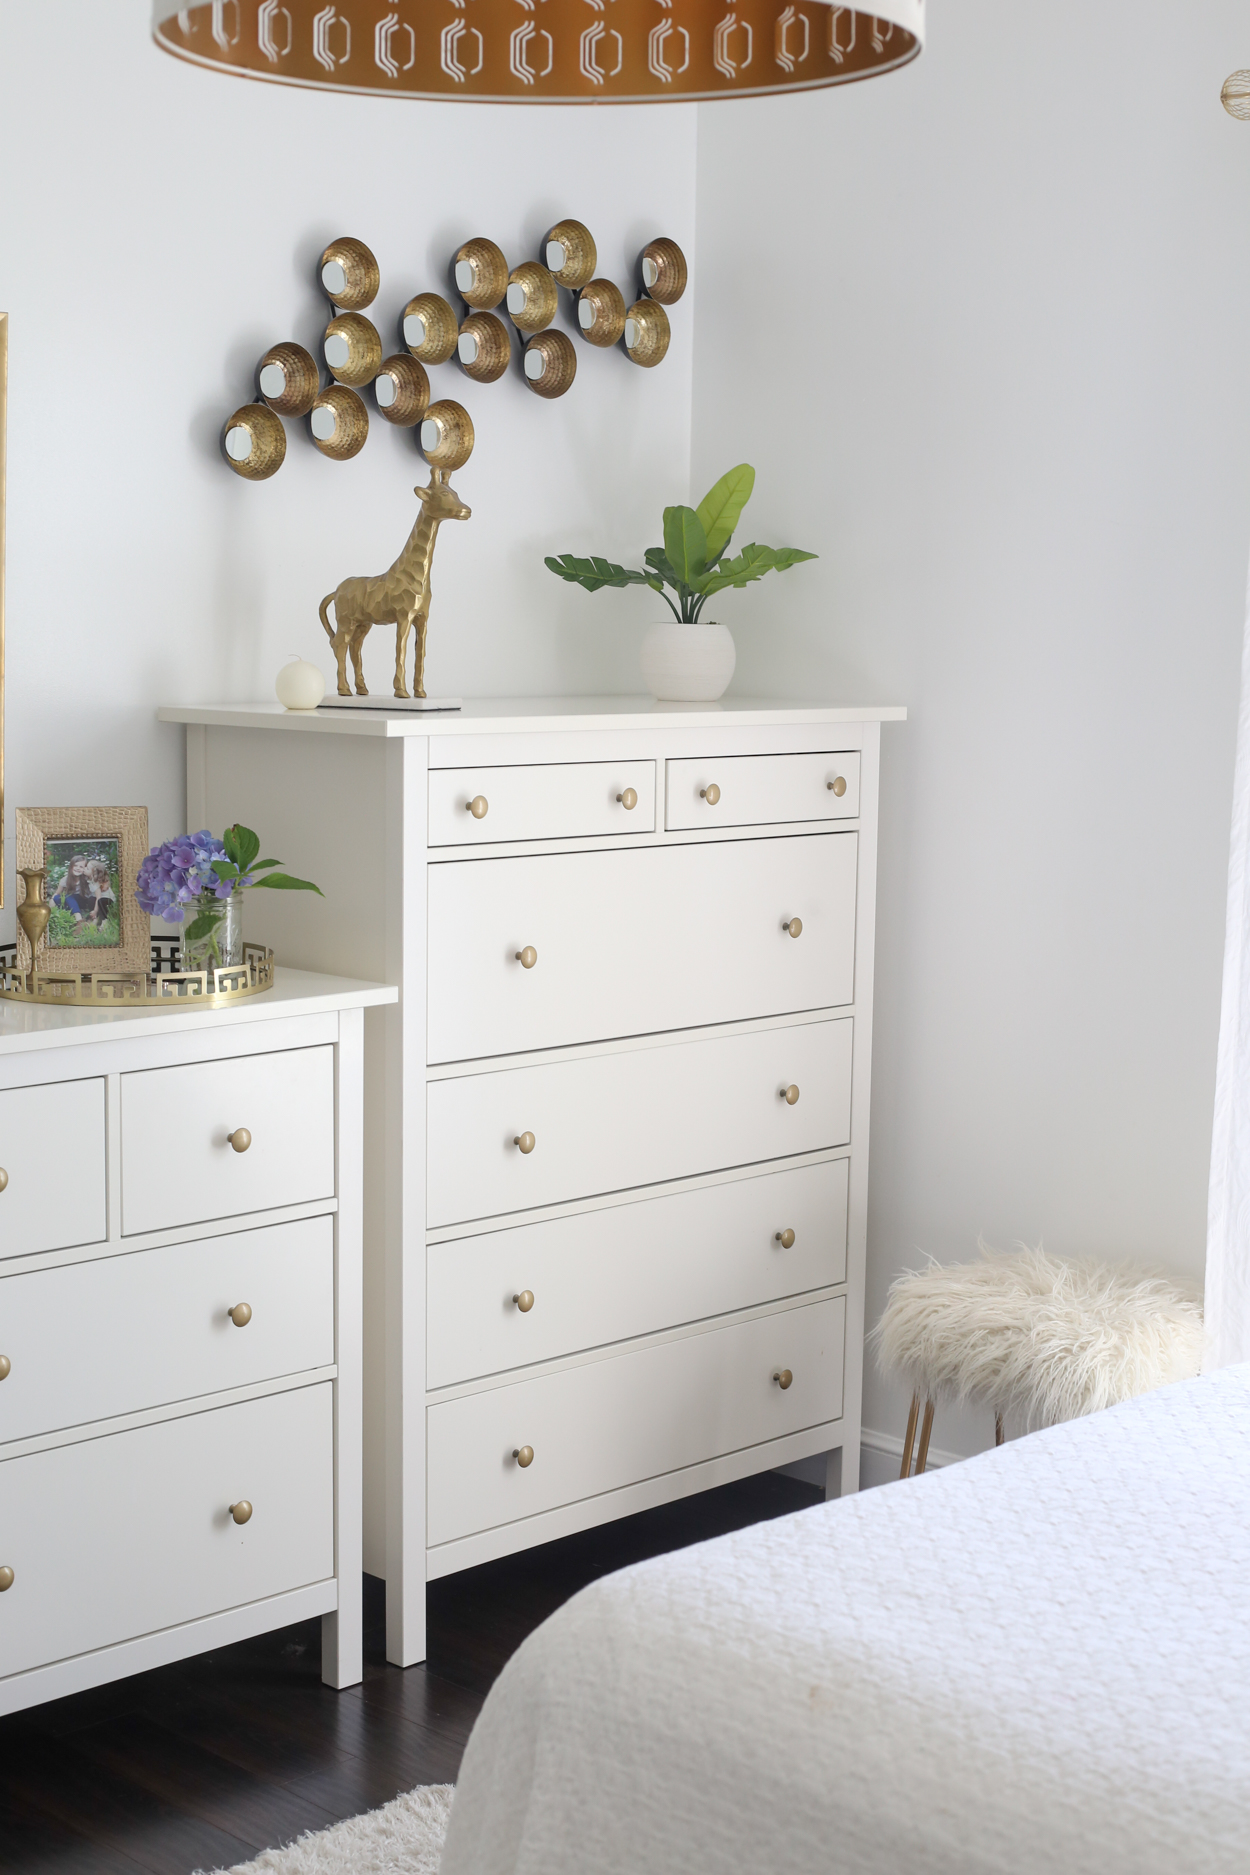 Tall dresser with a plant and gold giraffe.